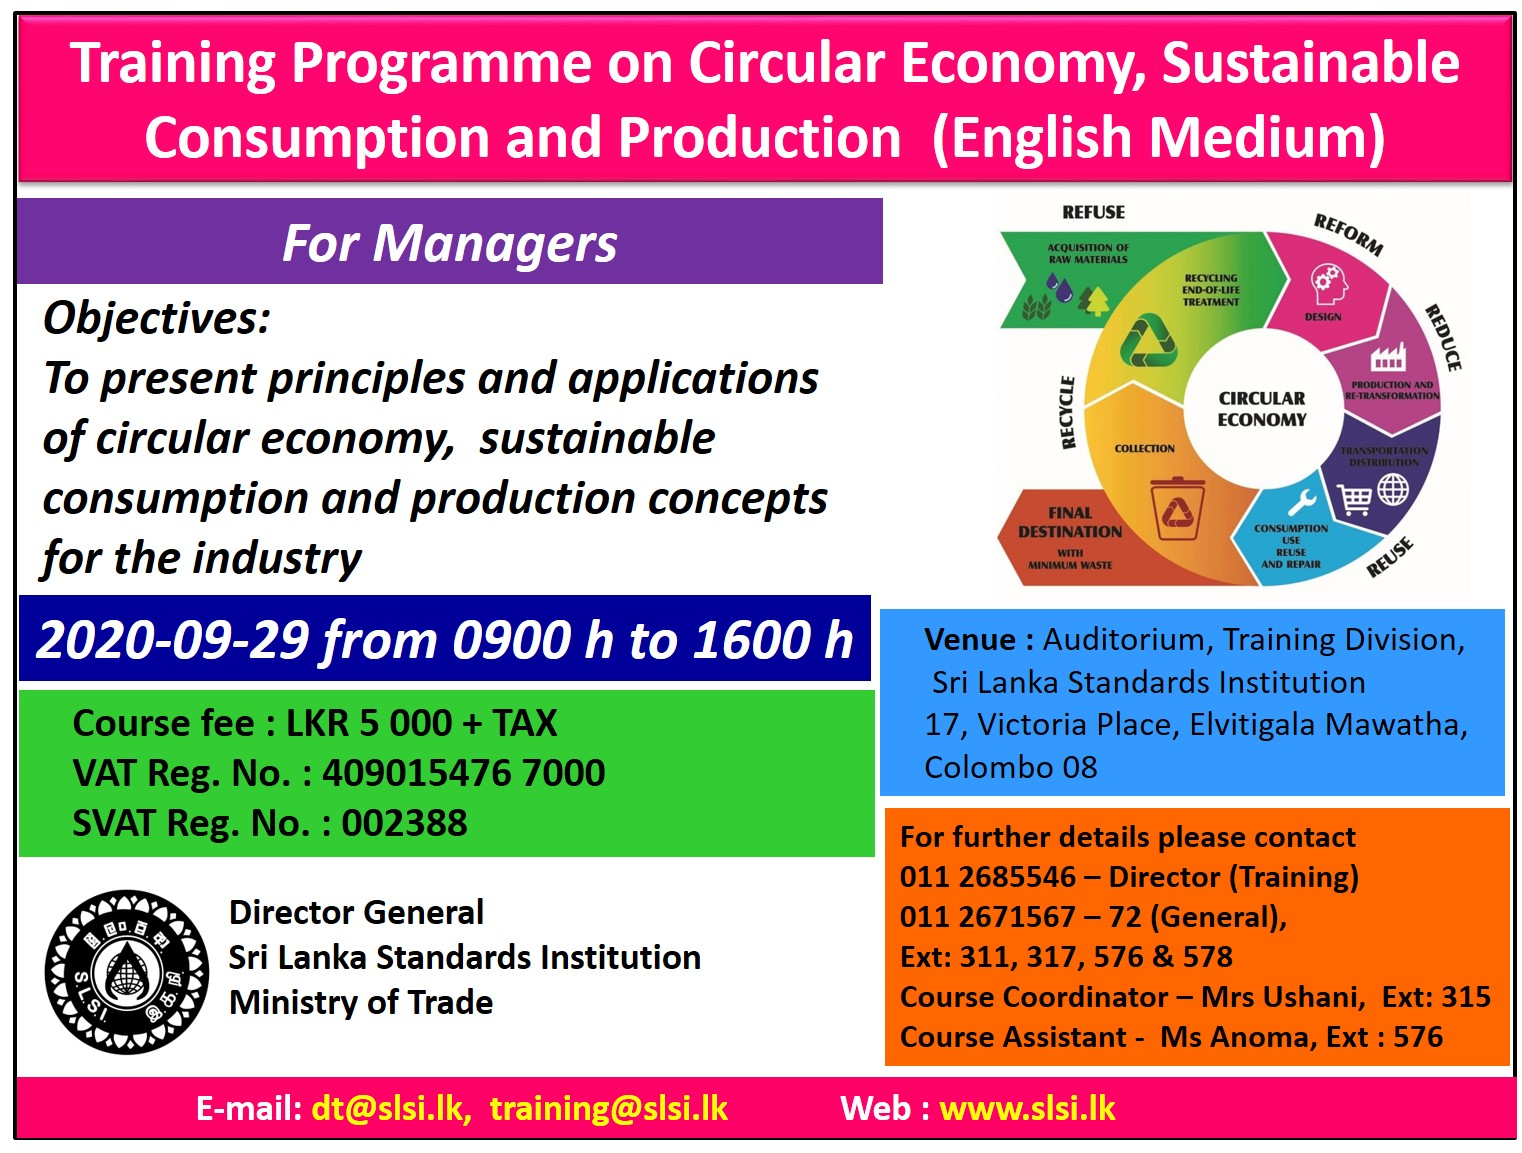 Circular Economy Sustainable Consumption and Production2020 09 29